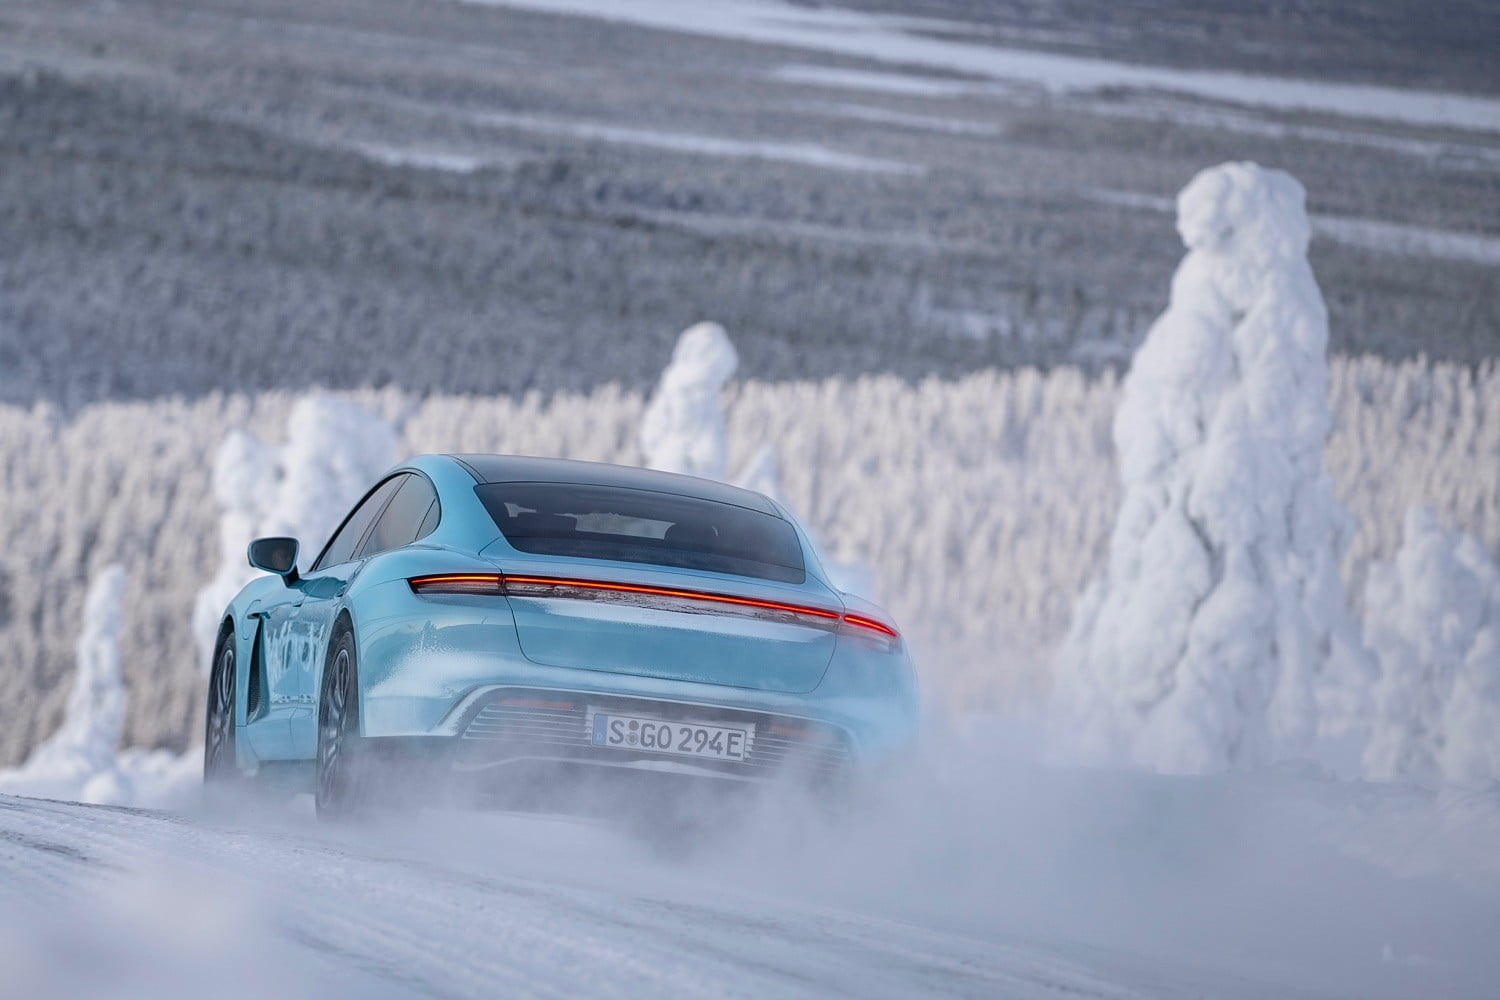 Here's how Porsche plans to give electric SUVs snow-conquering grip